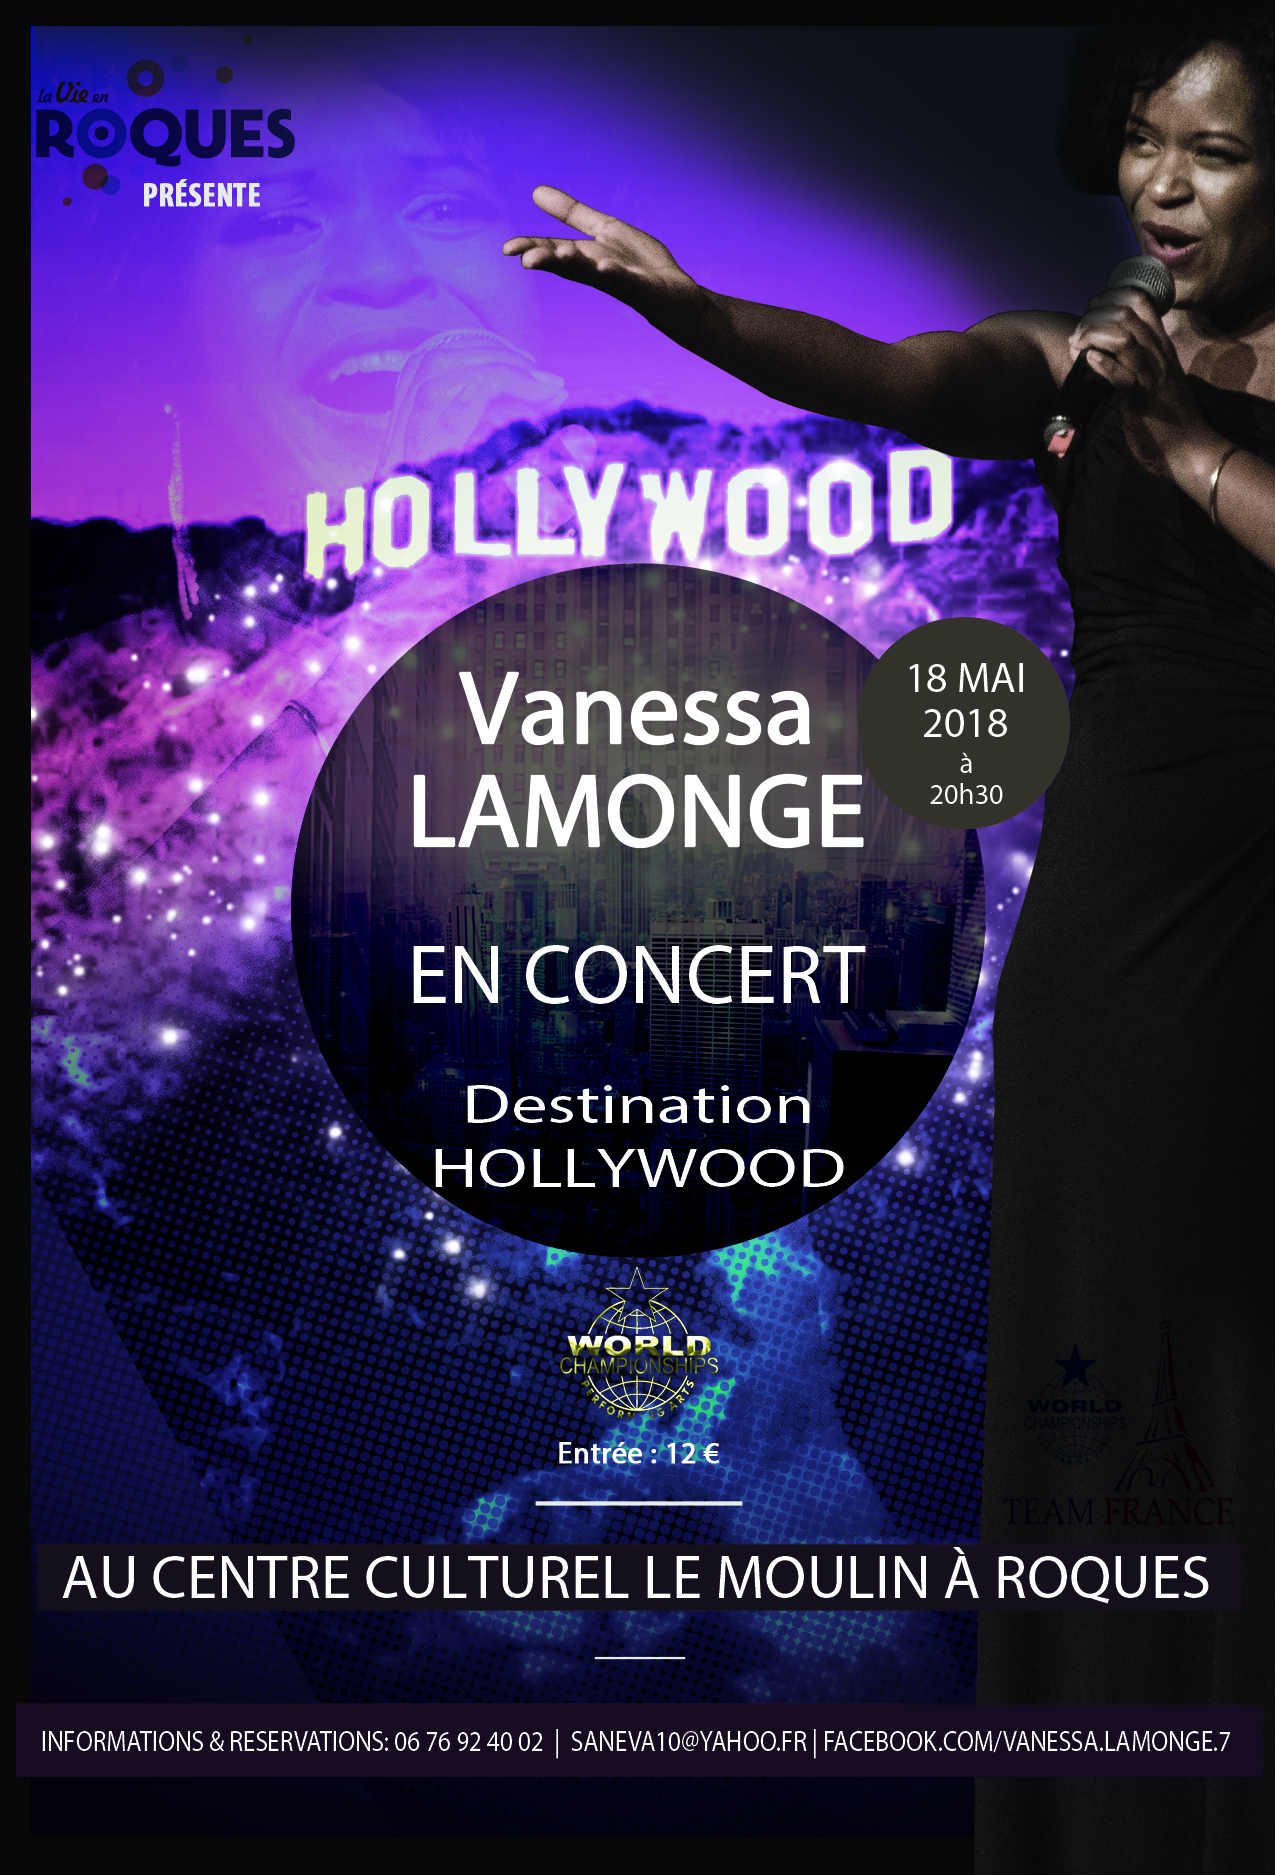 Vanessa Lamonge en concert: Destination Hollywood!